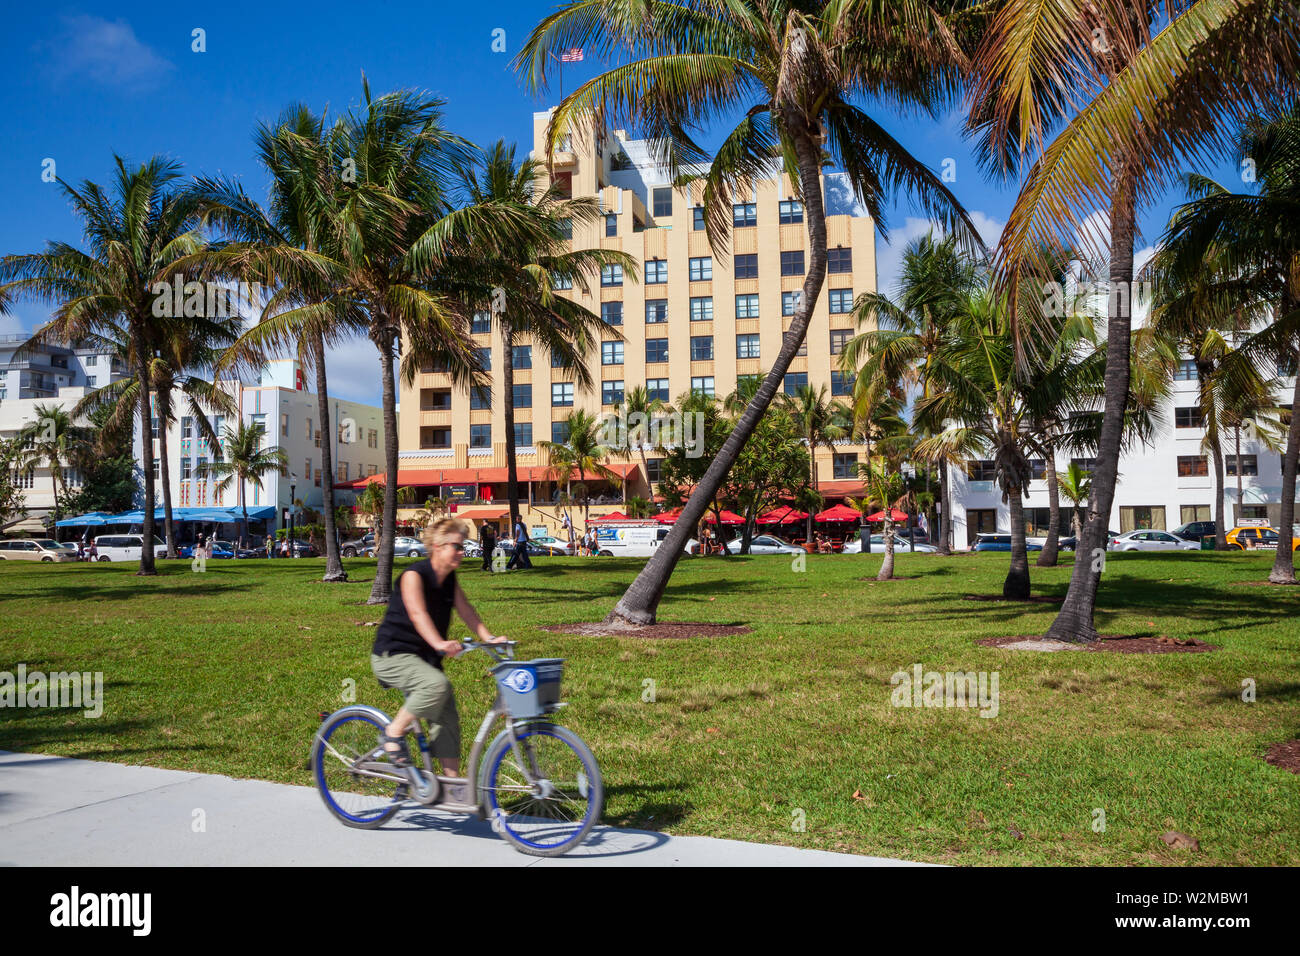 Model released female tourist riding a rental bicycle around Miami's South Beach on a sunny day. - Stock Image